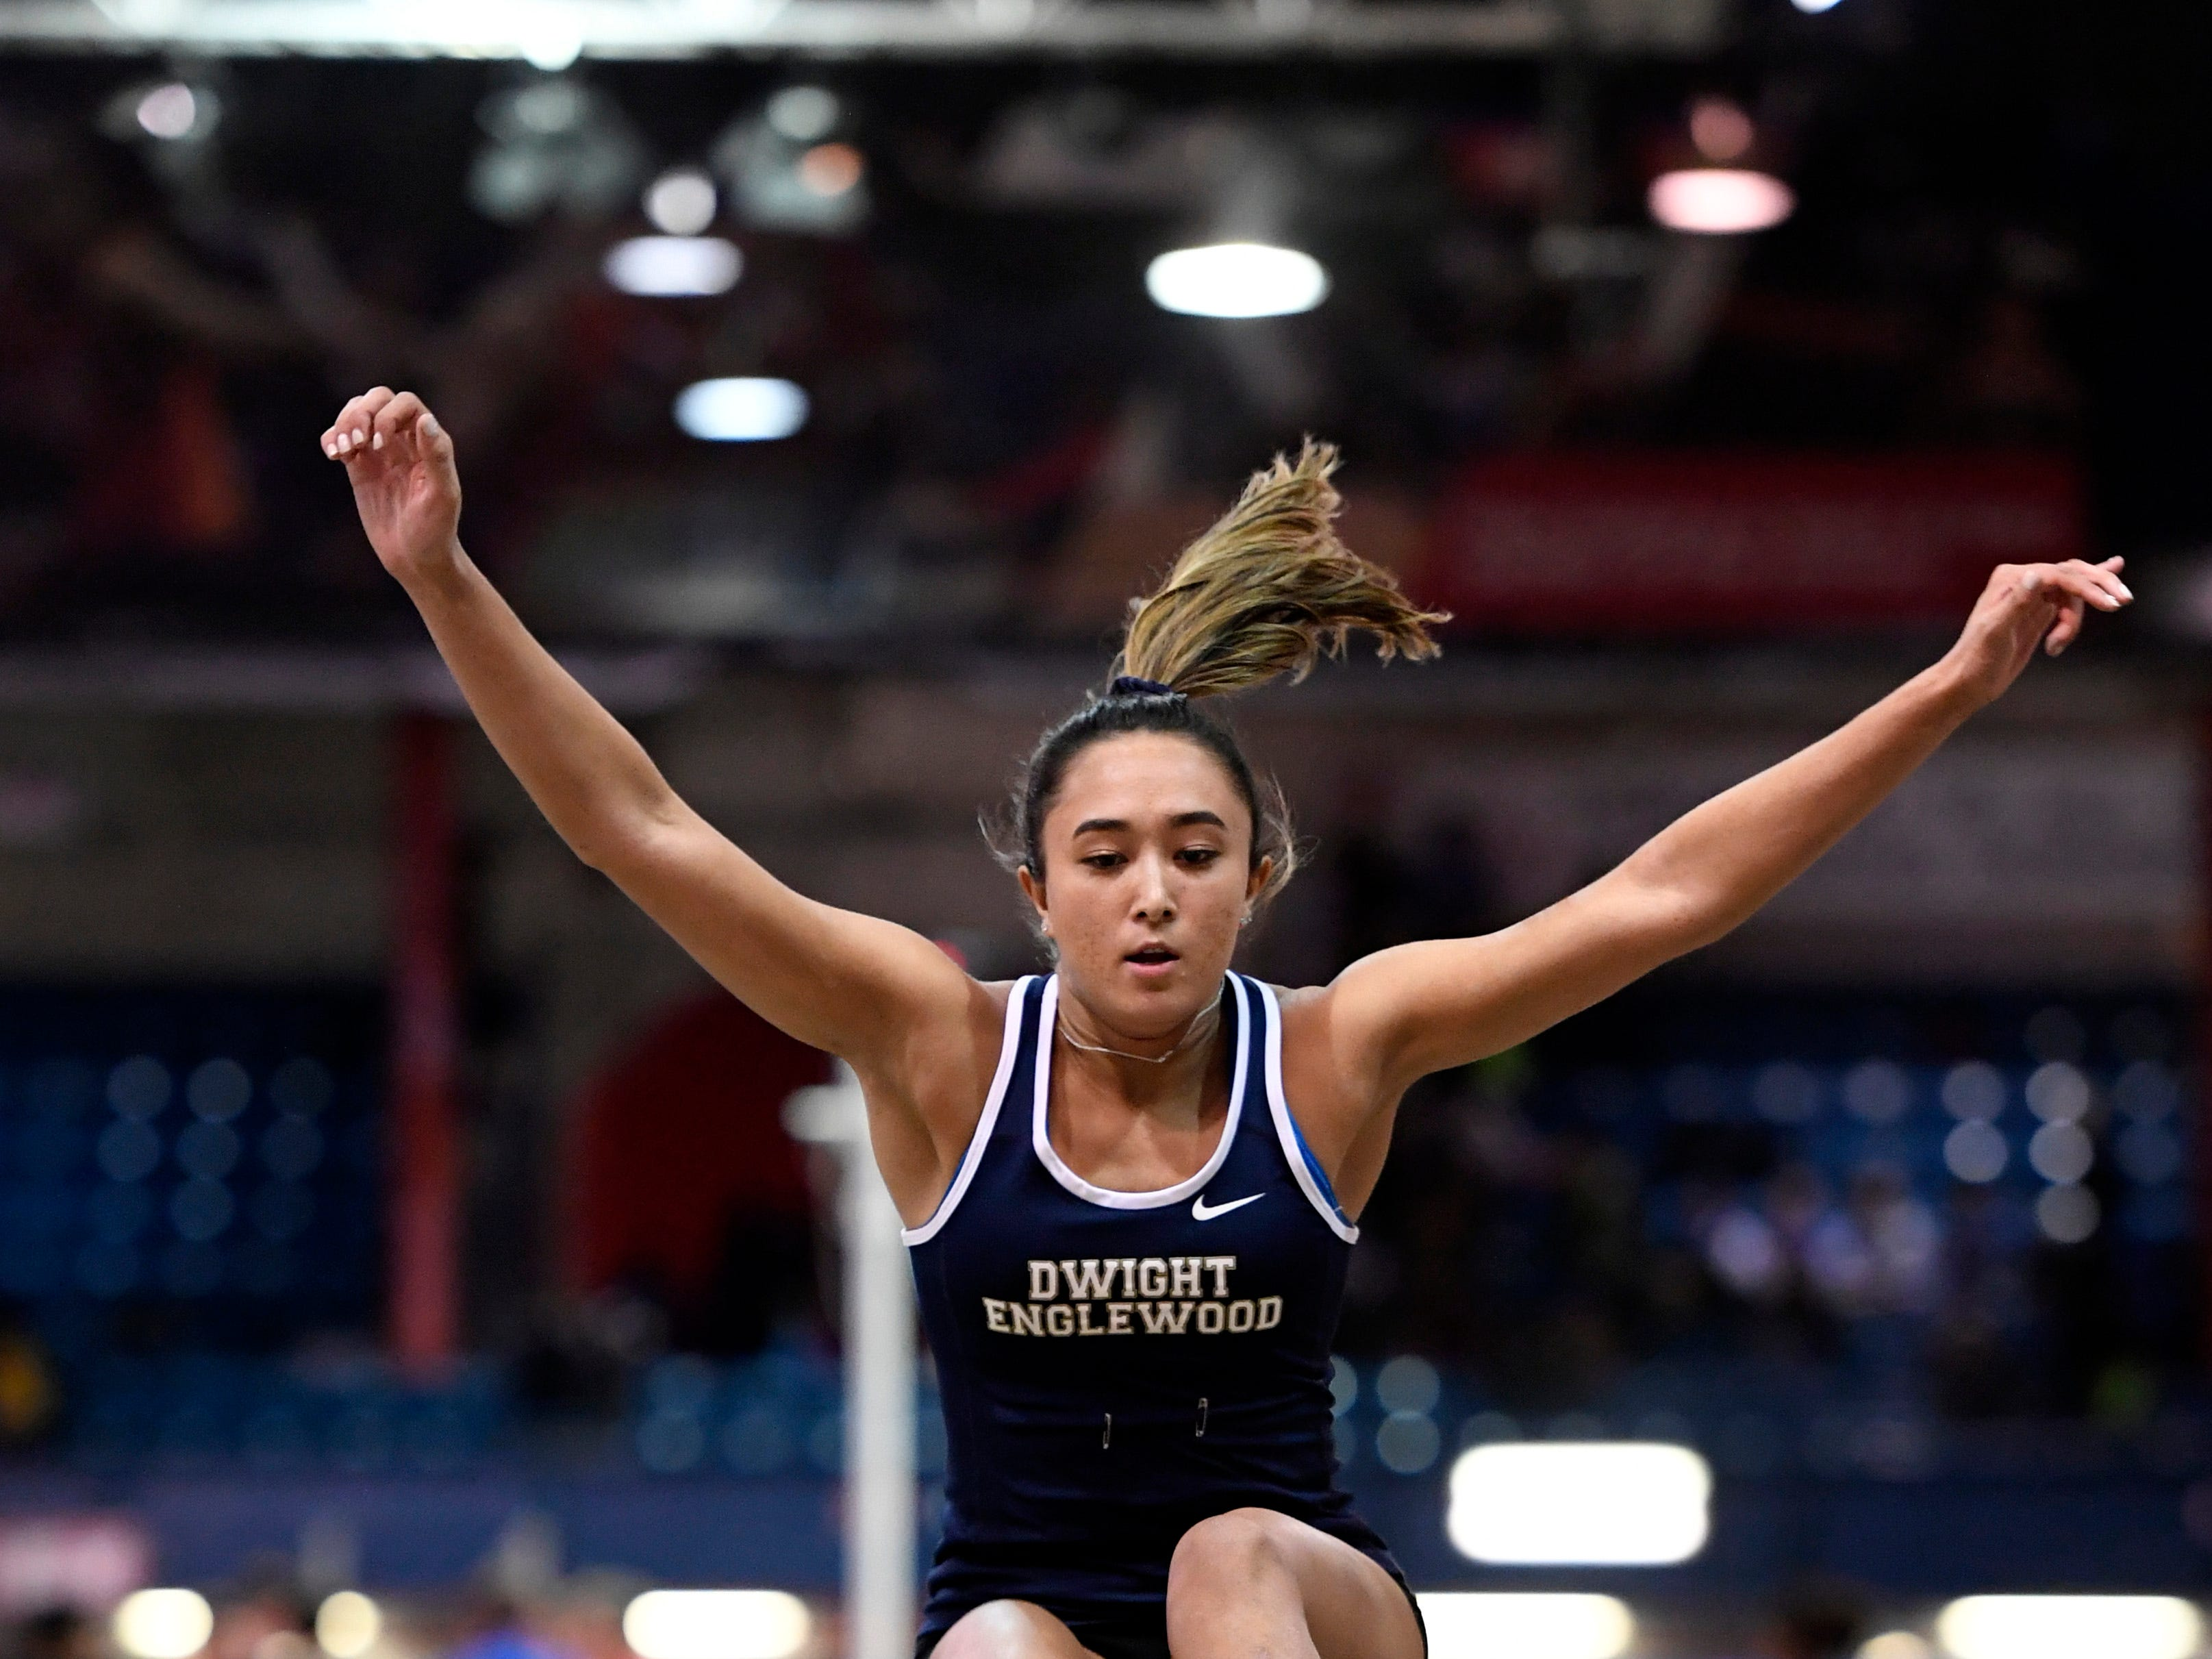 Caroline Lee of Dwight Englewood competes in the long jump during the NJIC track meet at the Armory Track on Monday, Jan. 7, 2019, in New York.